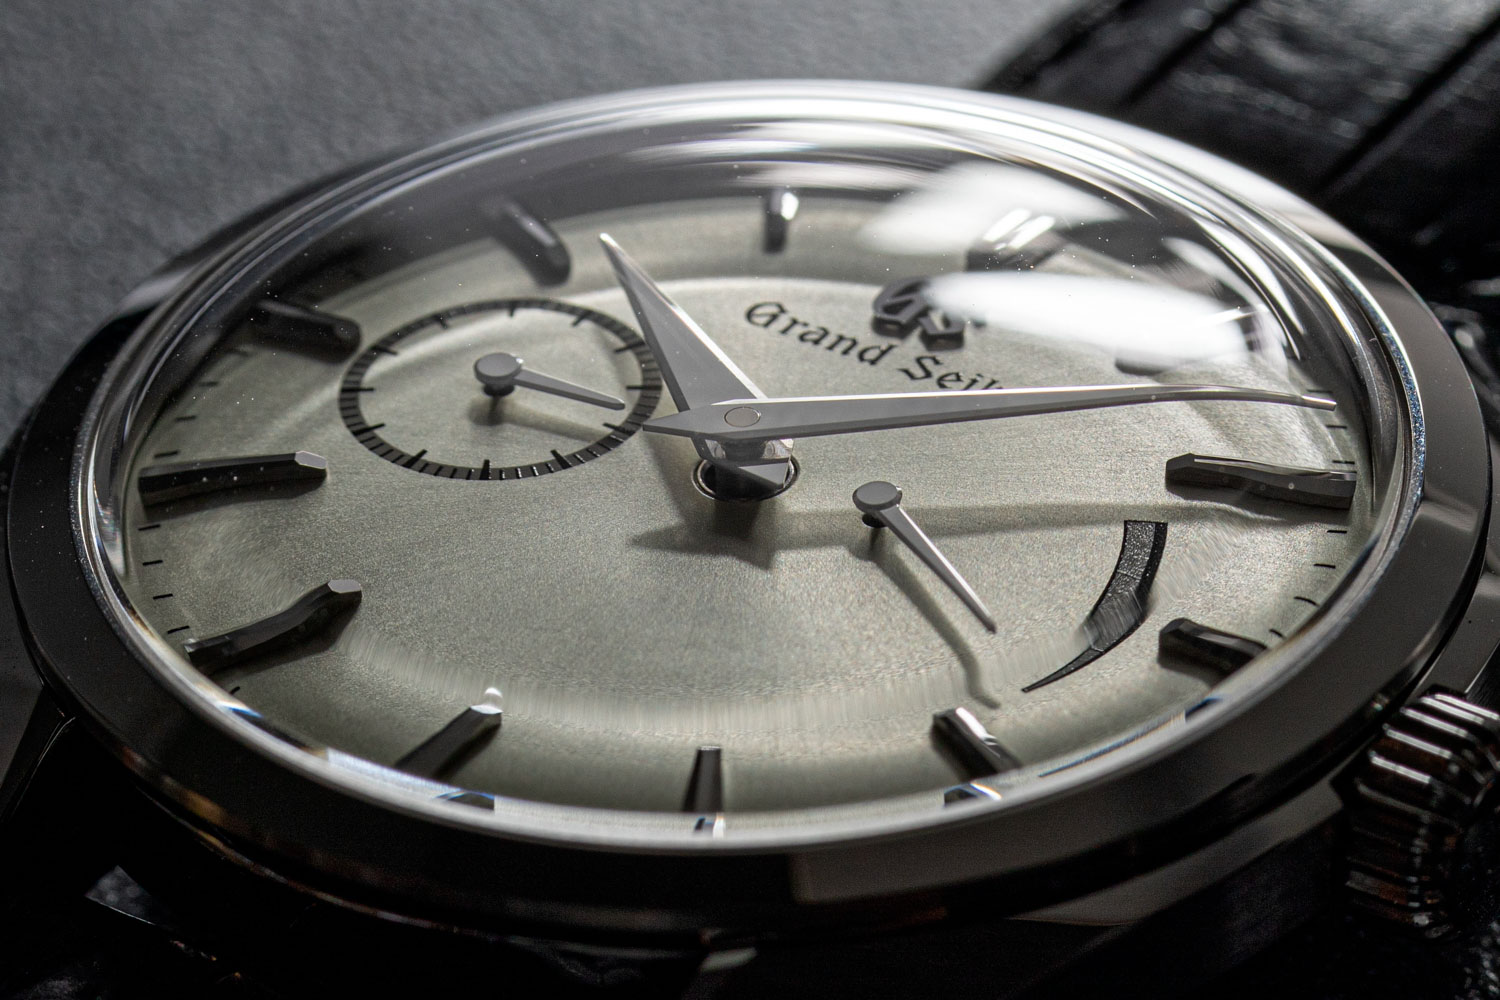 The manual wound Grand Seiko SBGK007G is yet another Zen Reductionist timepiece featuring hour, minute, small seconds and power reserve display (©Revolution)